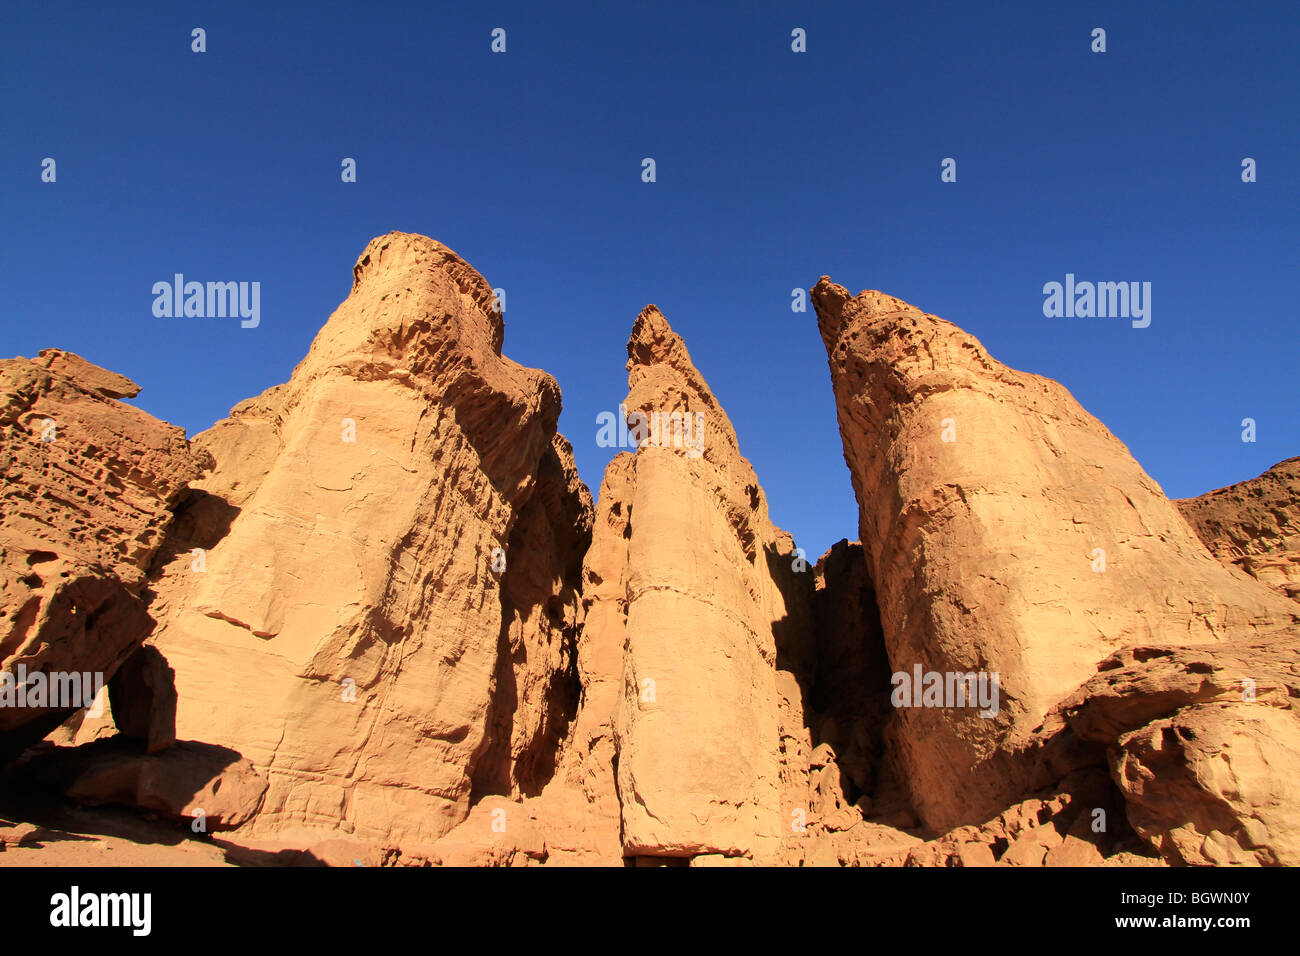 Israel, Eilat Mountains, Solomon's Pillars in Timna Valley - Stock Image